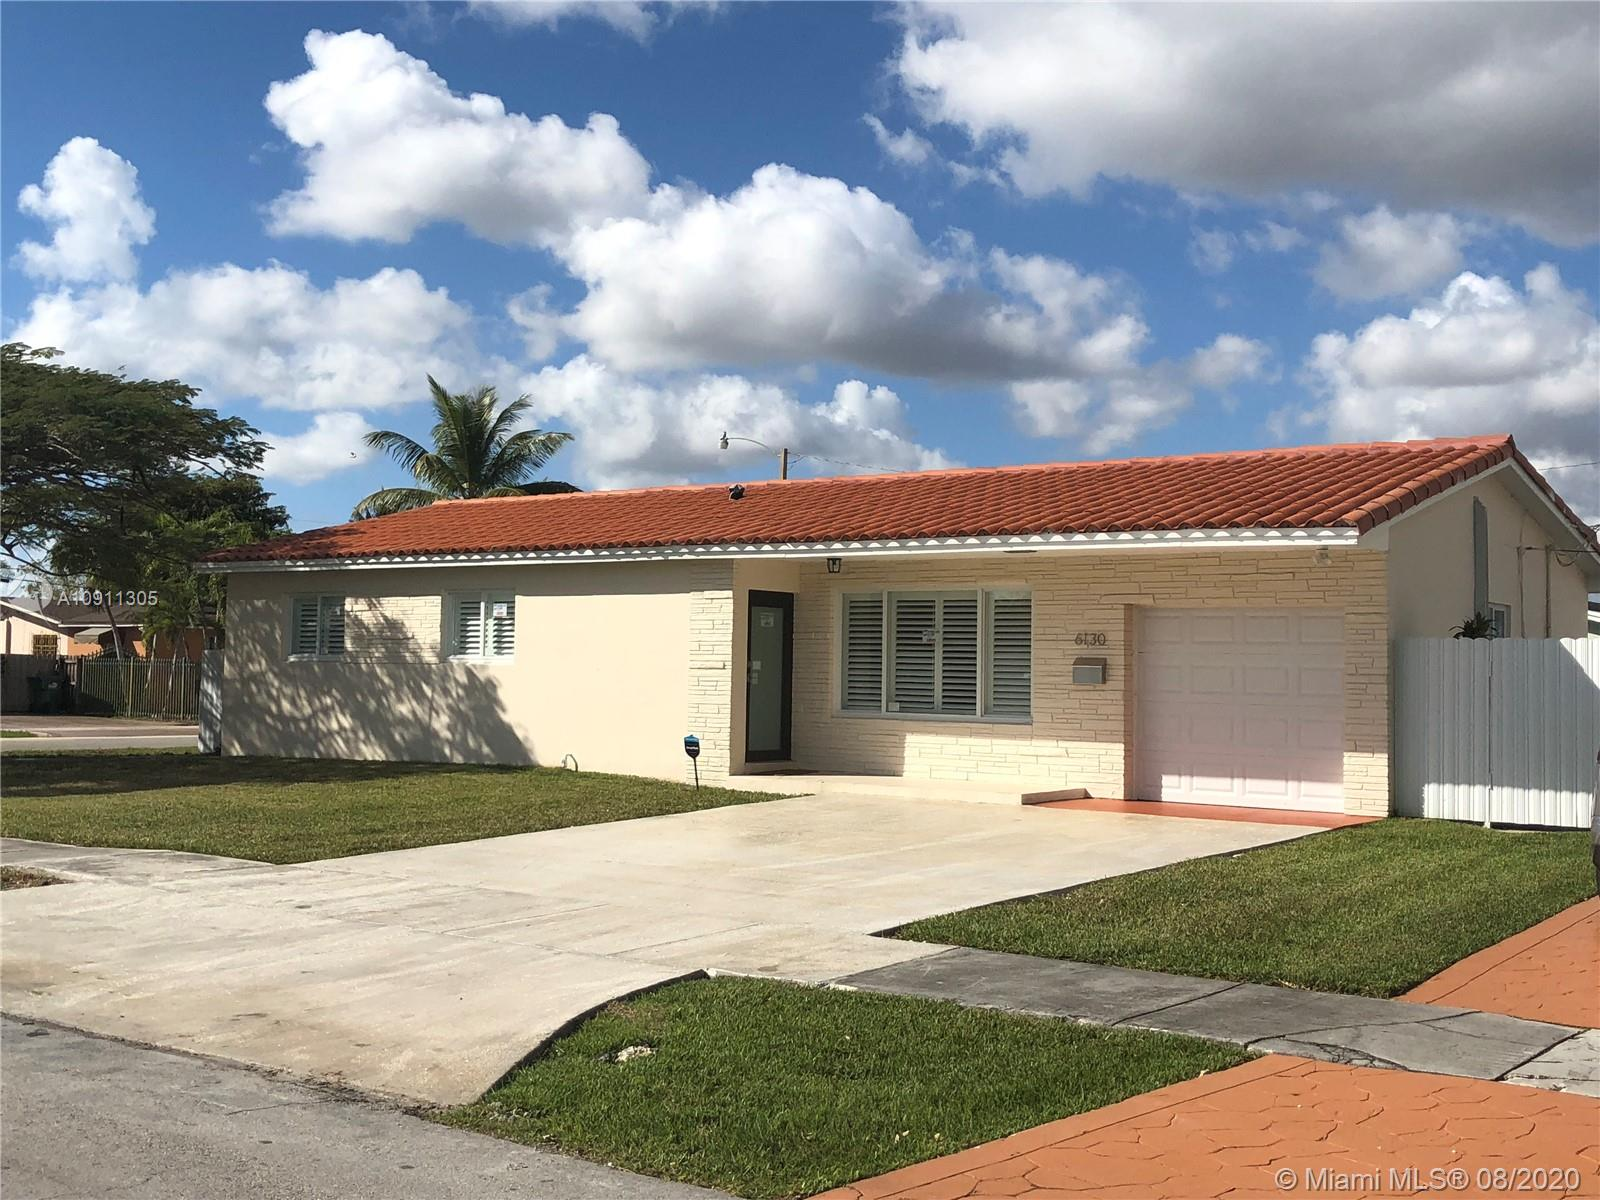 6130 SW 93rd Ct, Miami FL 33173